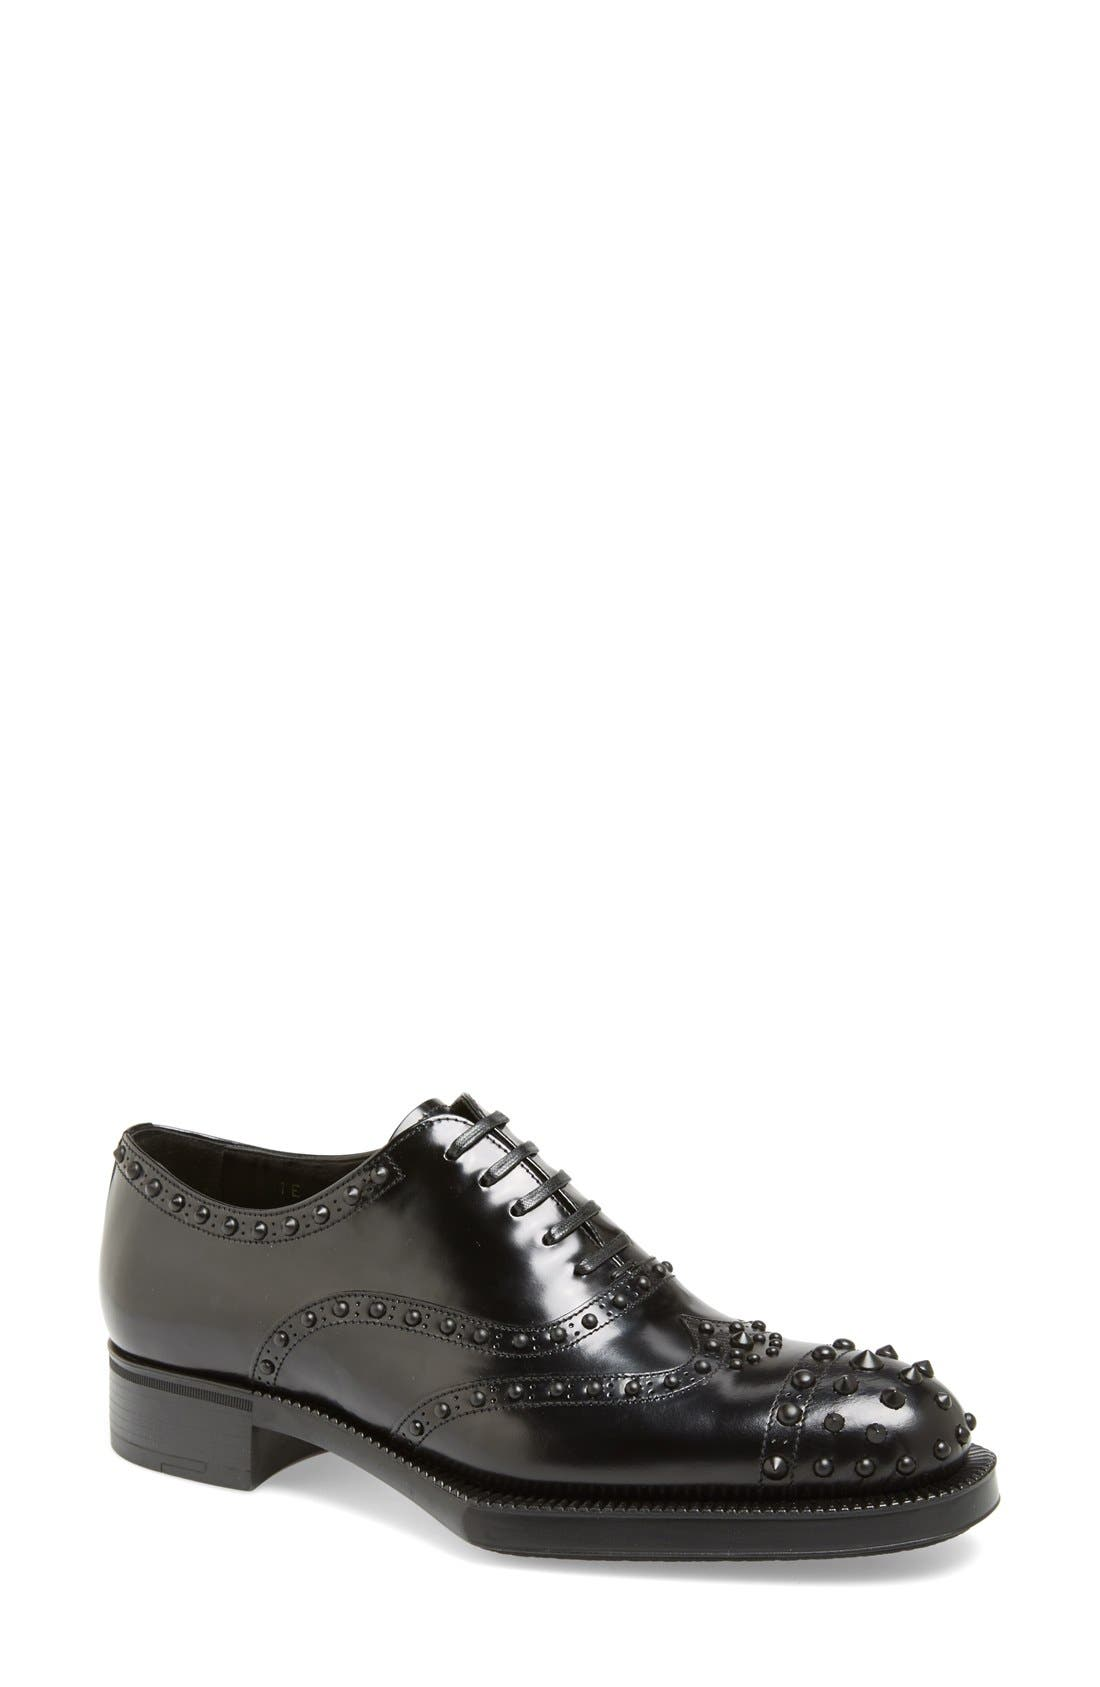 Main Image - Prada Studded Wingtip Oxford (Women)